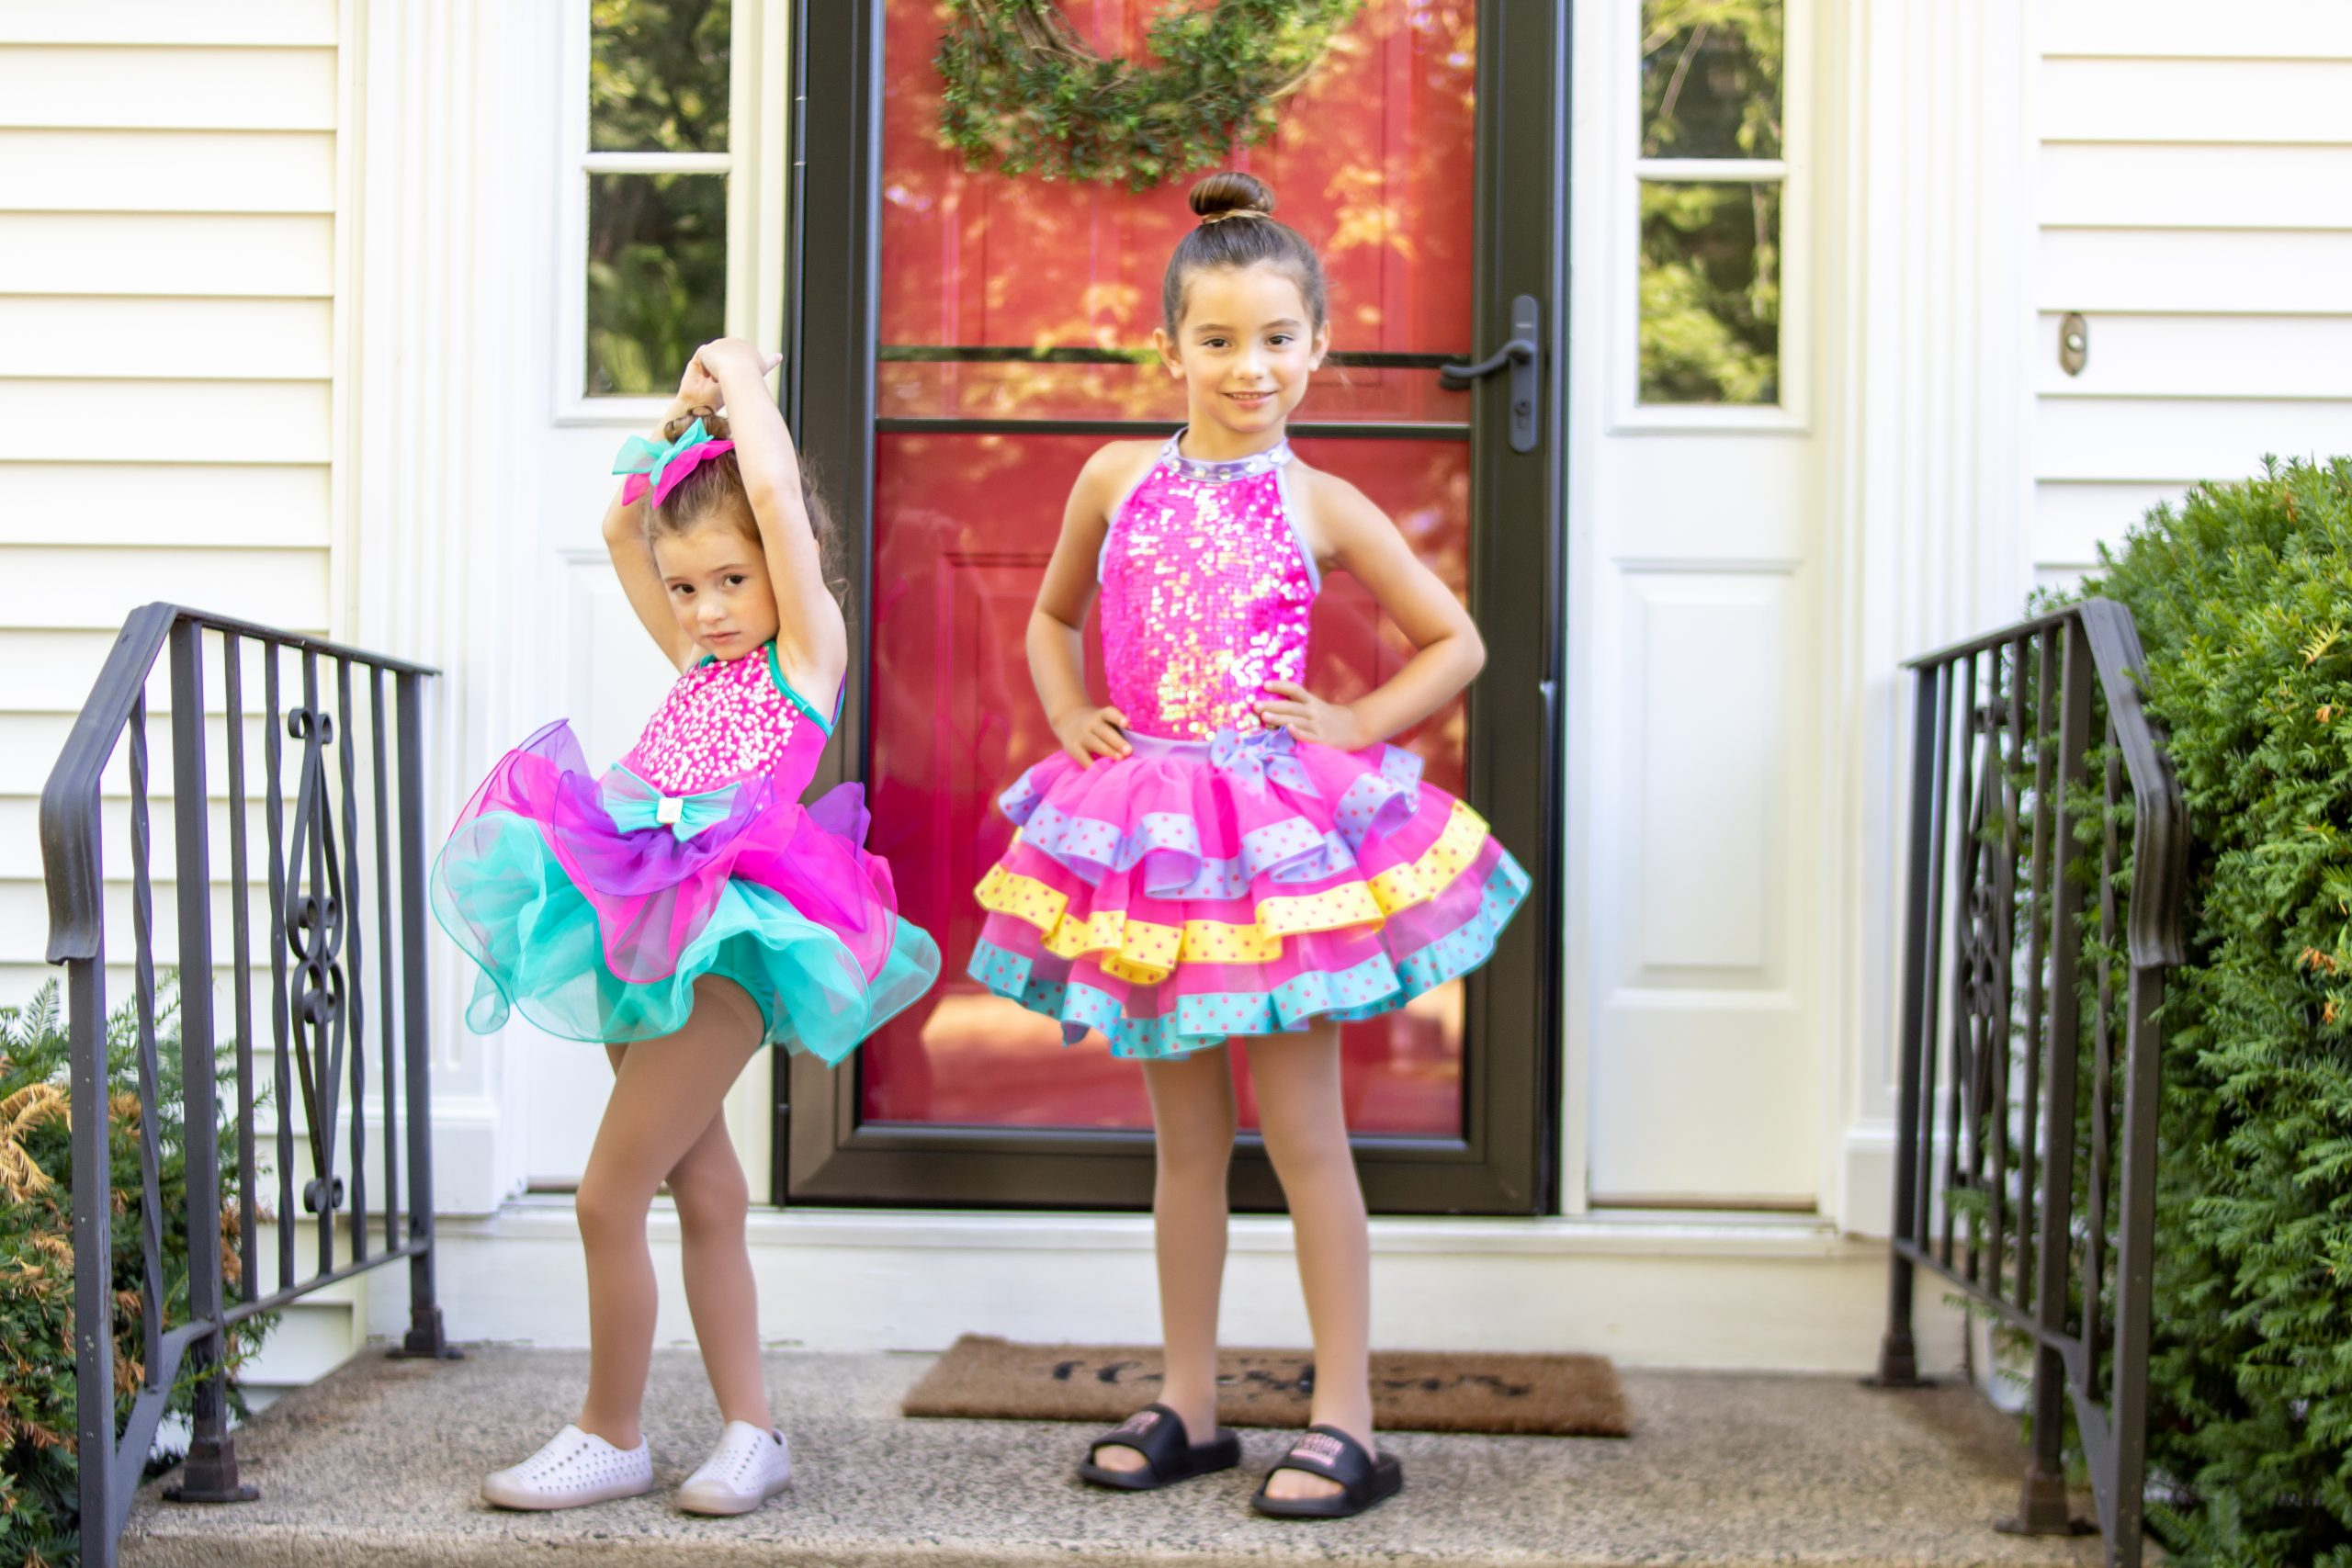 sisters in dance costumes for recital in July